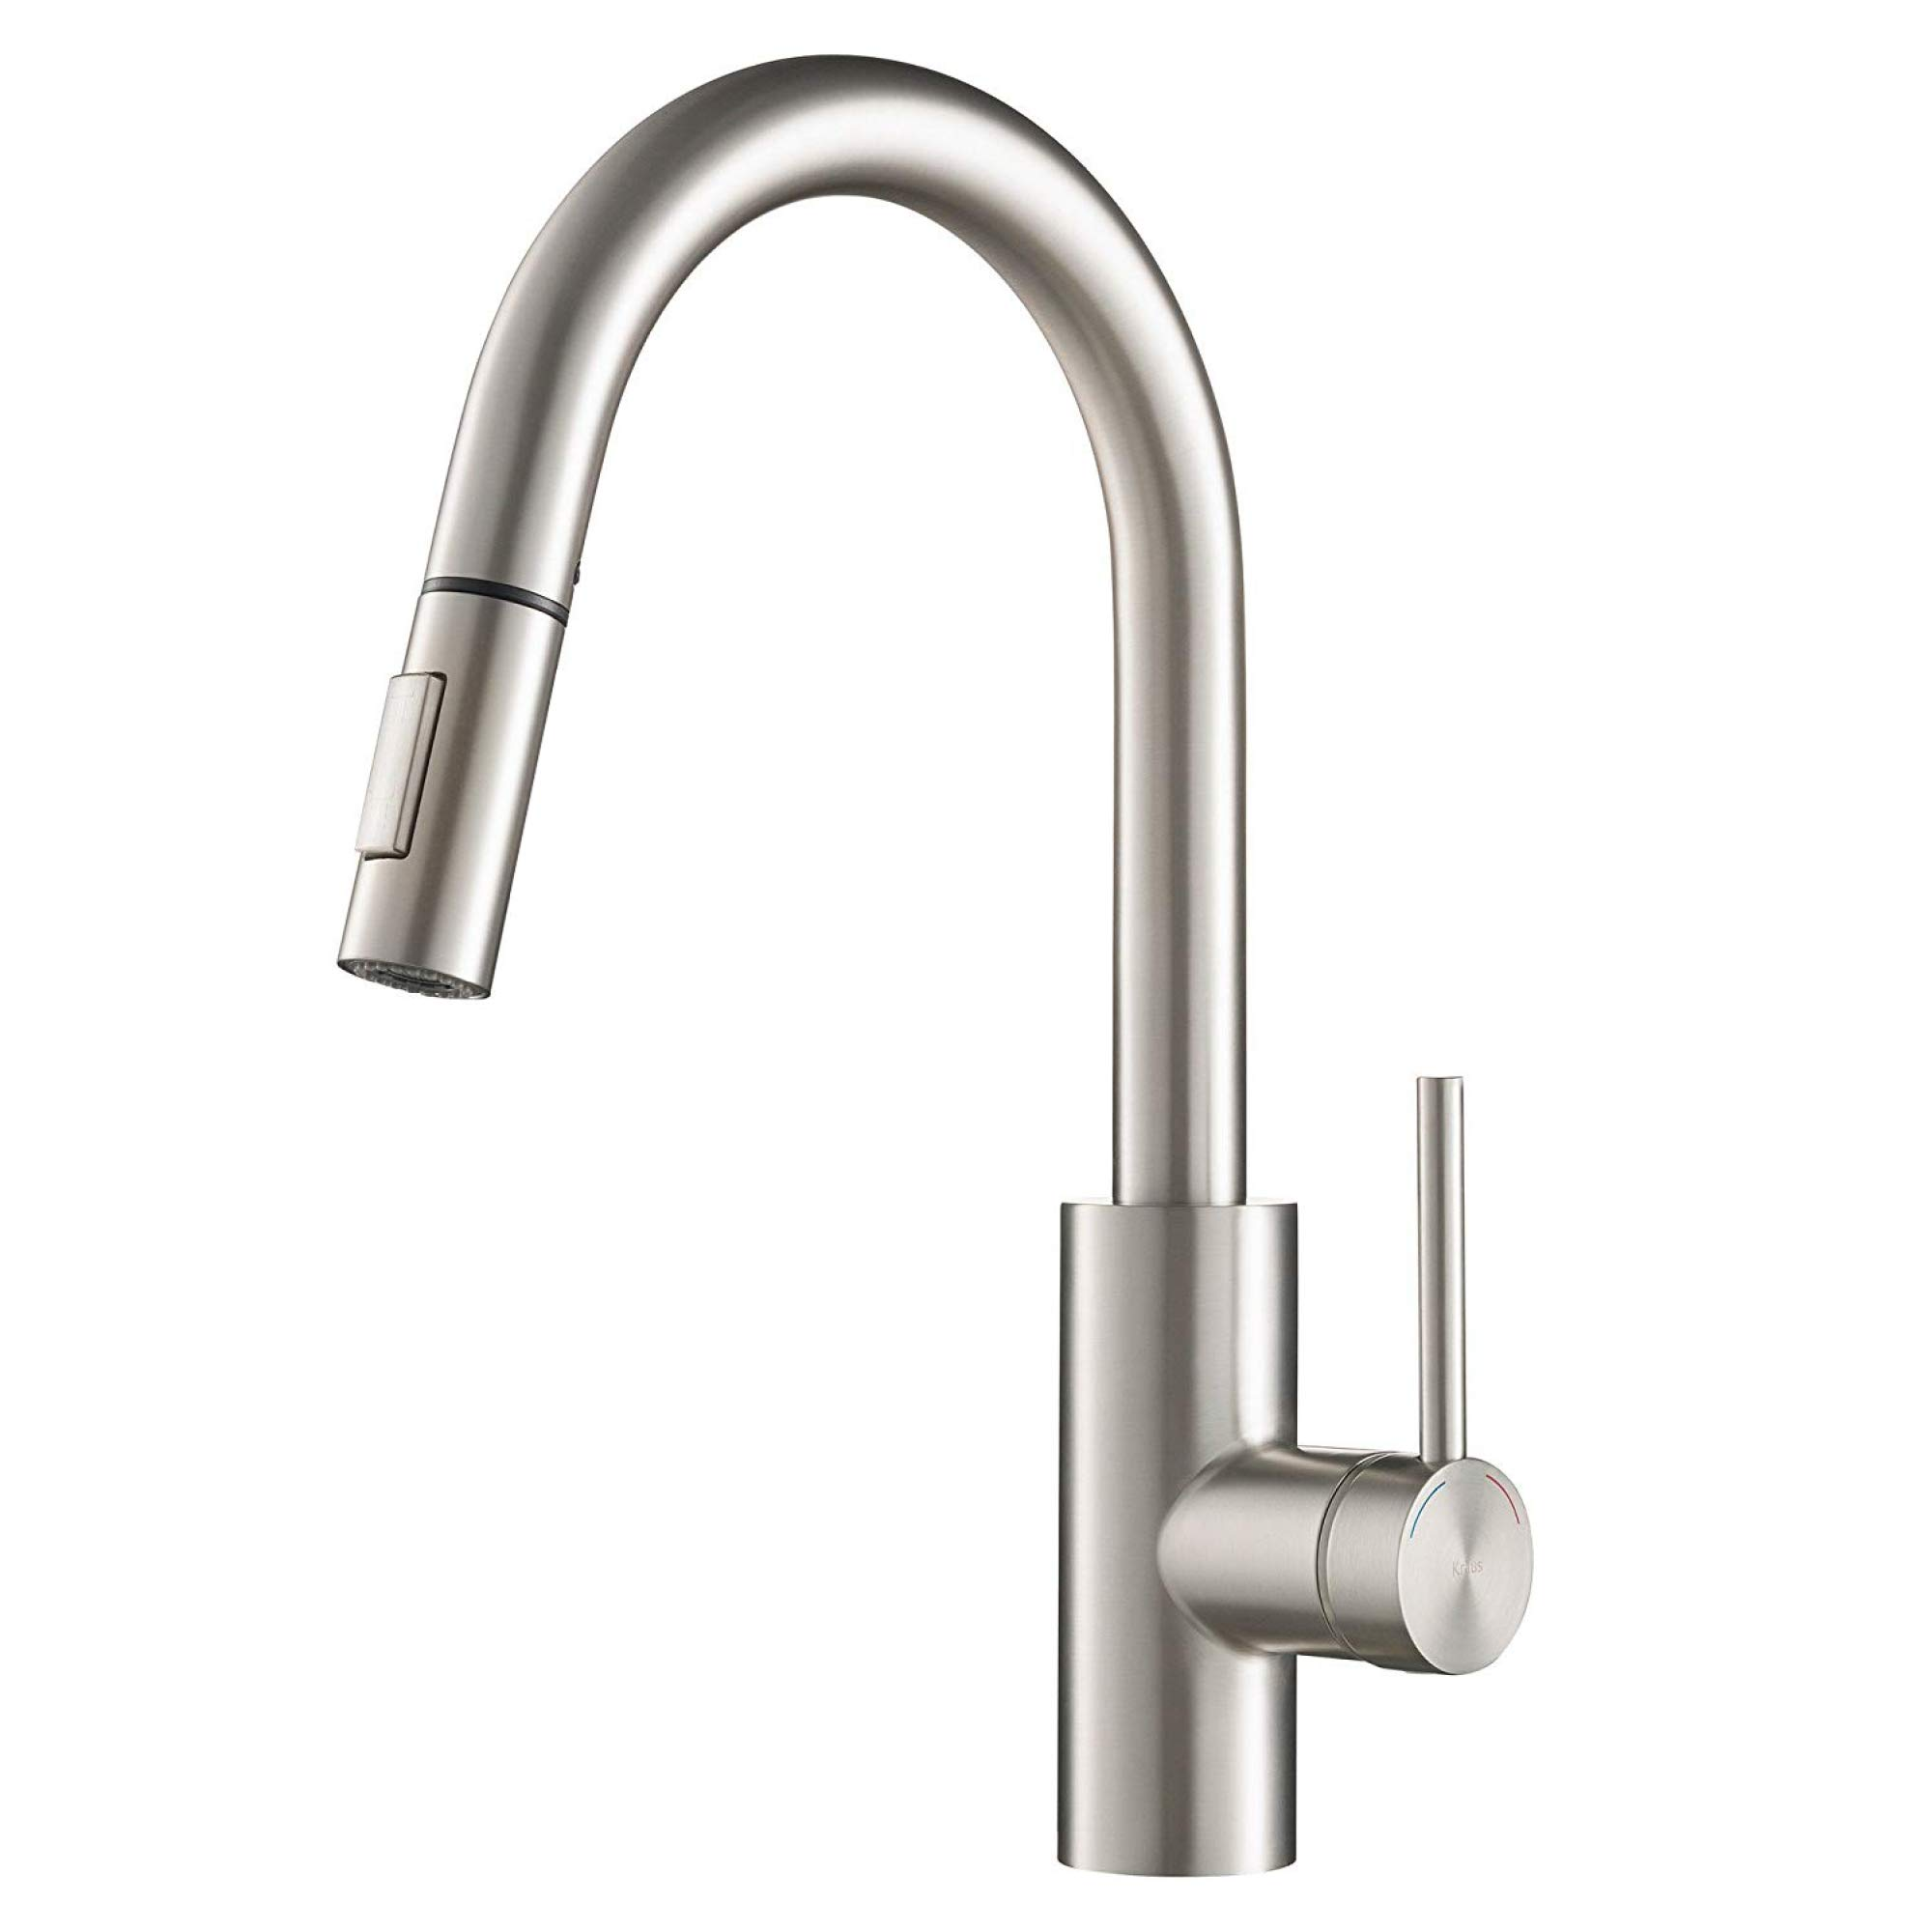 Kraus KPF-2620SFS Oletto Kitchen Faucet, 15.75 inch, Spot Free Stainless Steel by Kraus